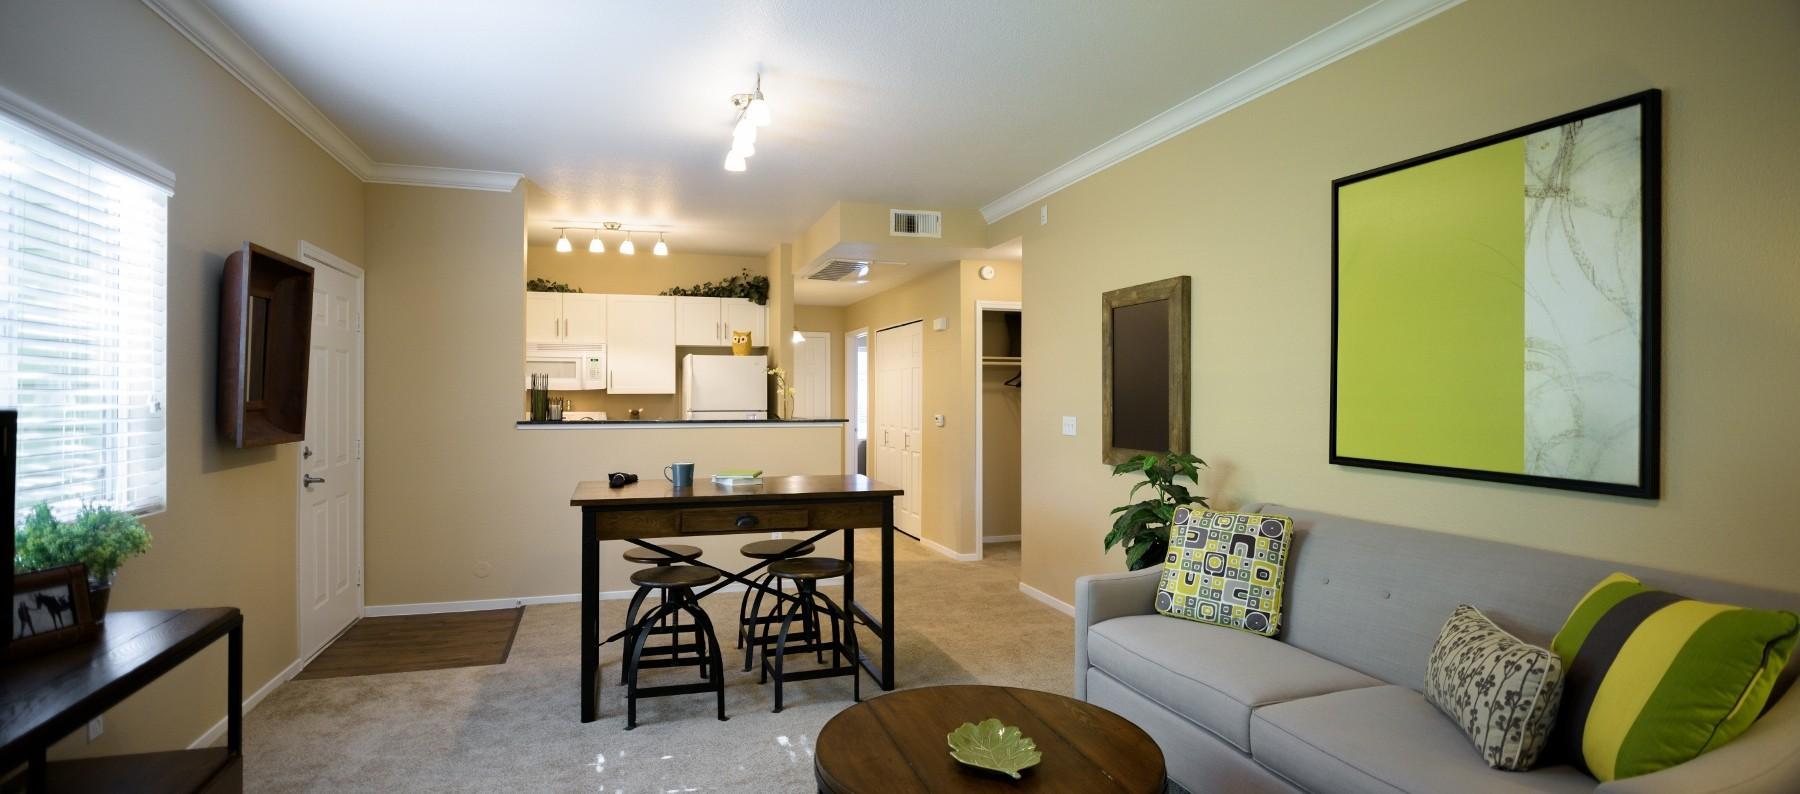 Rocklin Ranch Apartments Photo #1